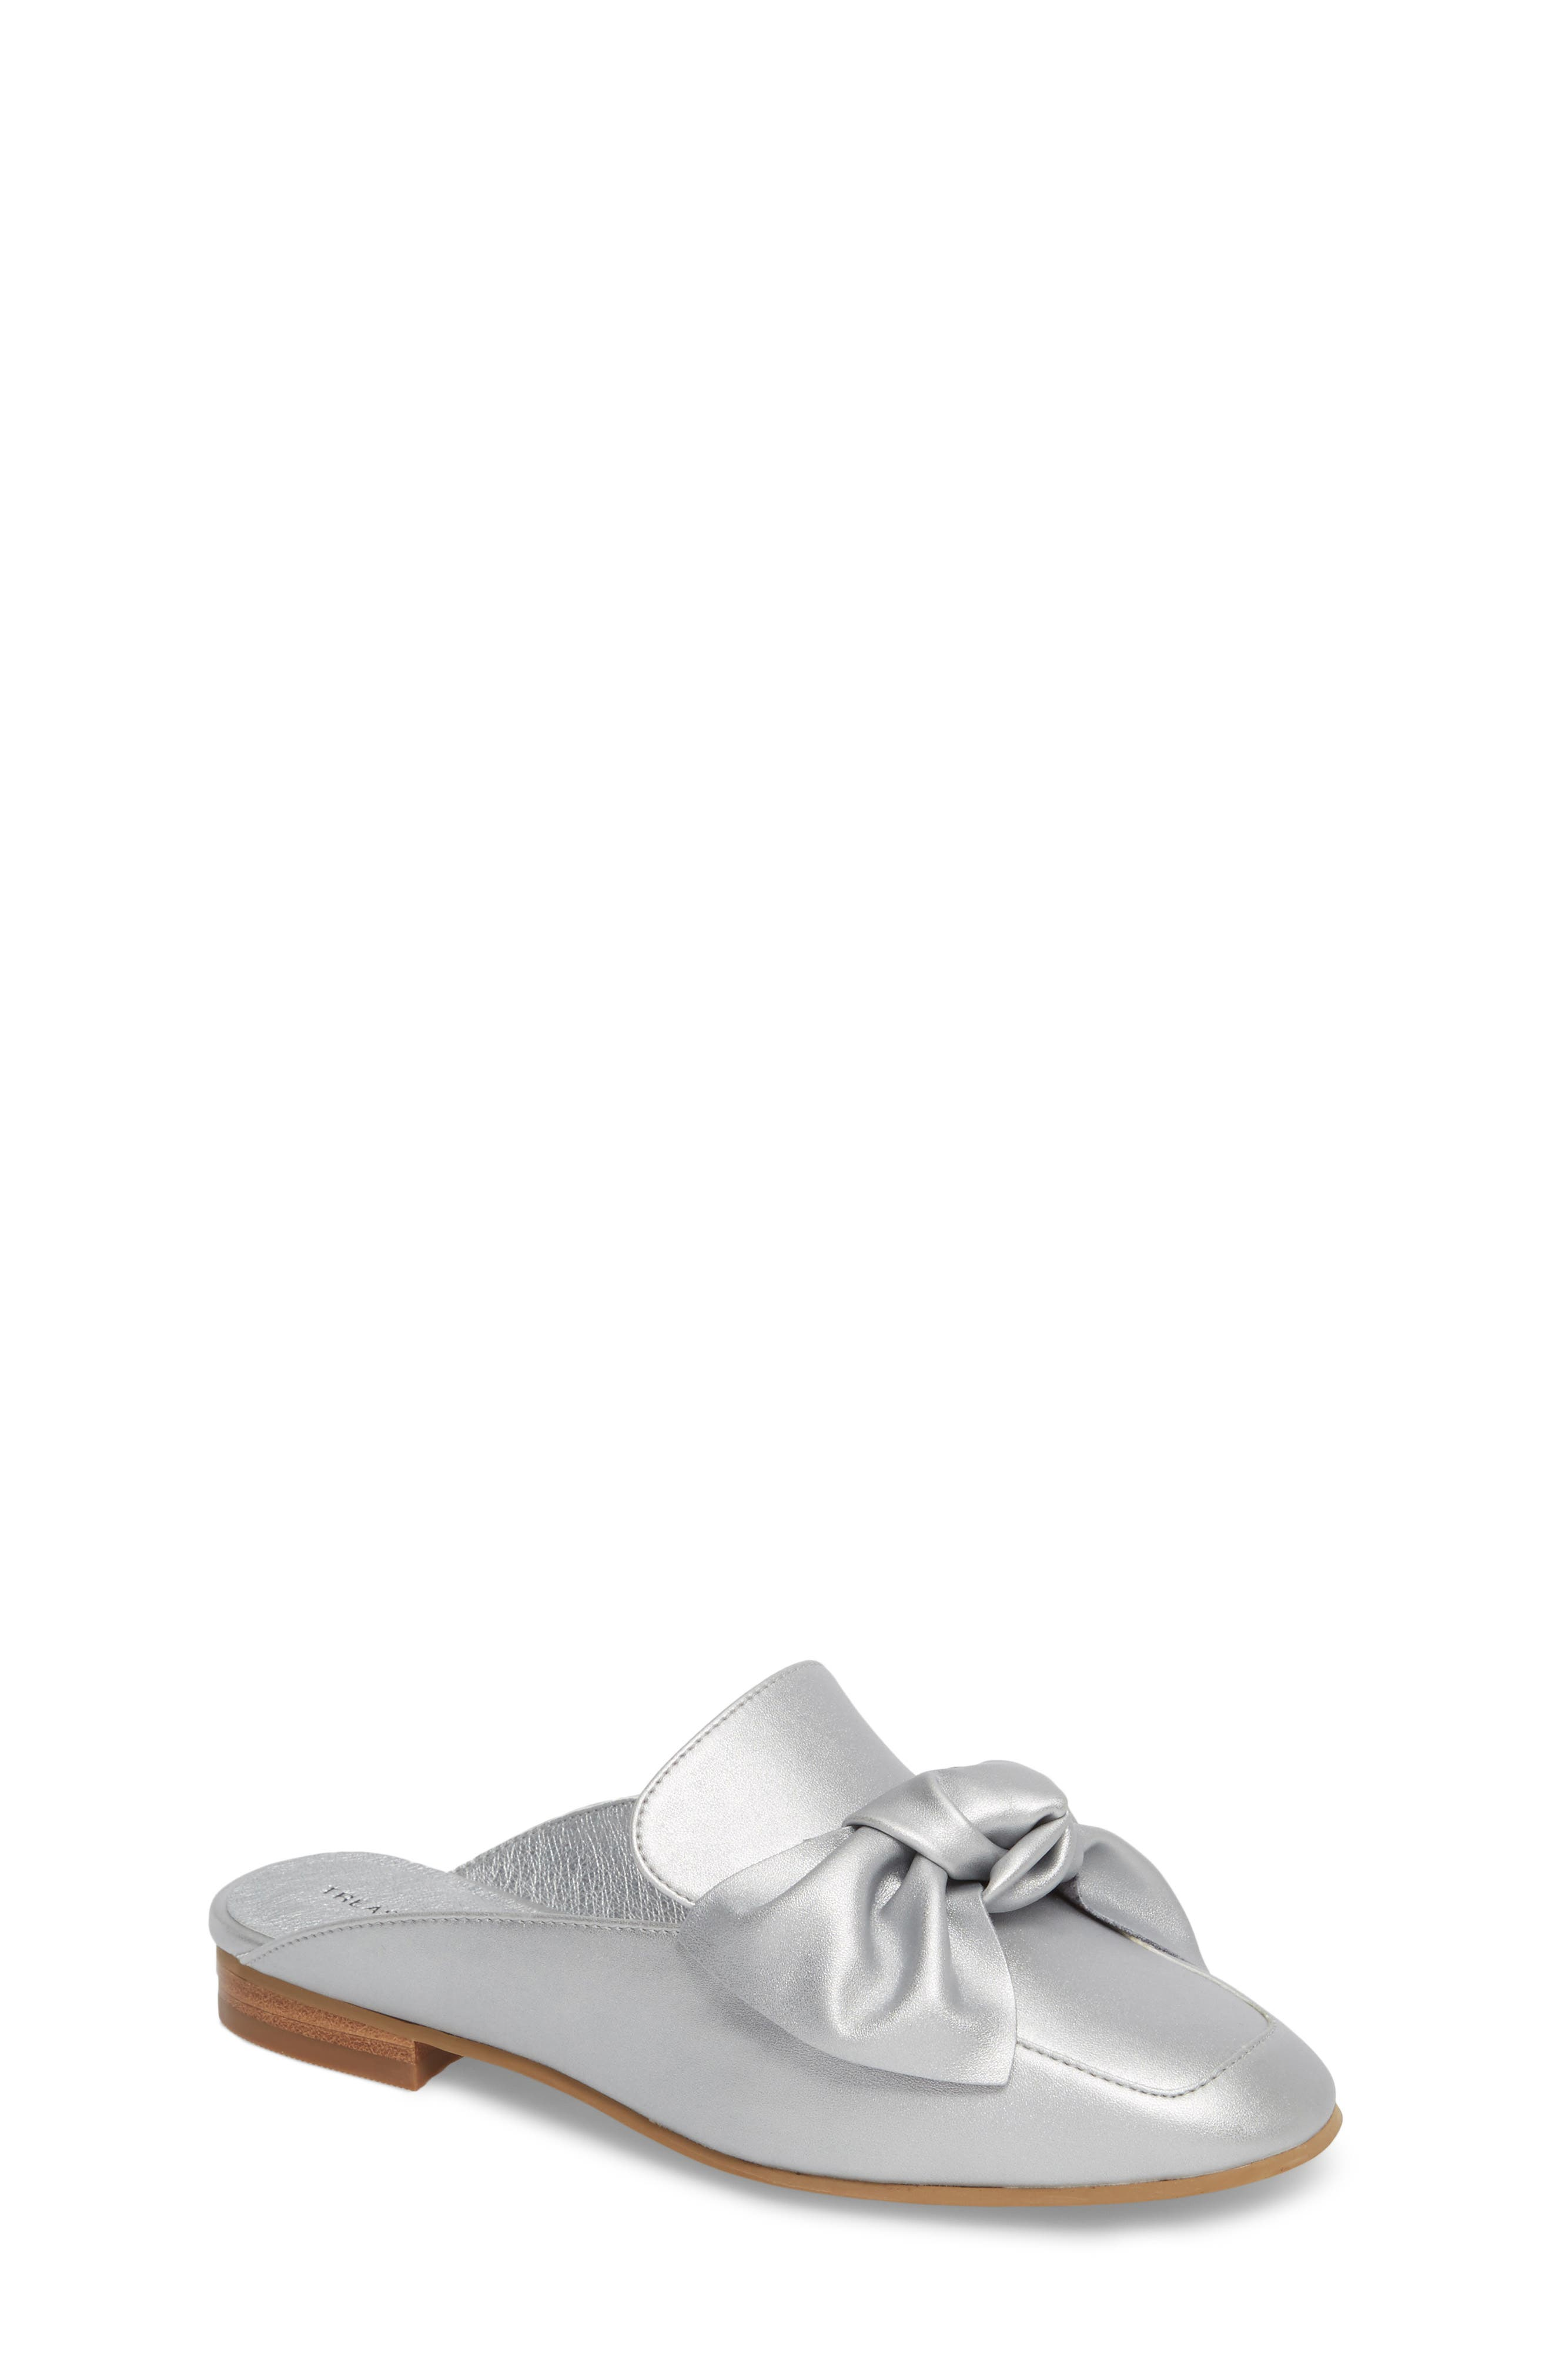 Gina Knotted Loafer Mule,                             Main thumbnail 1, color,                             Silver Faux Leather